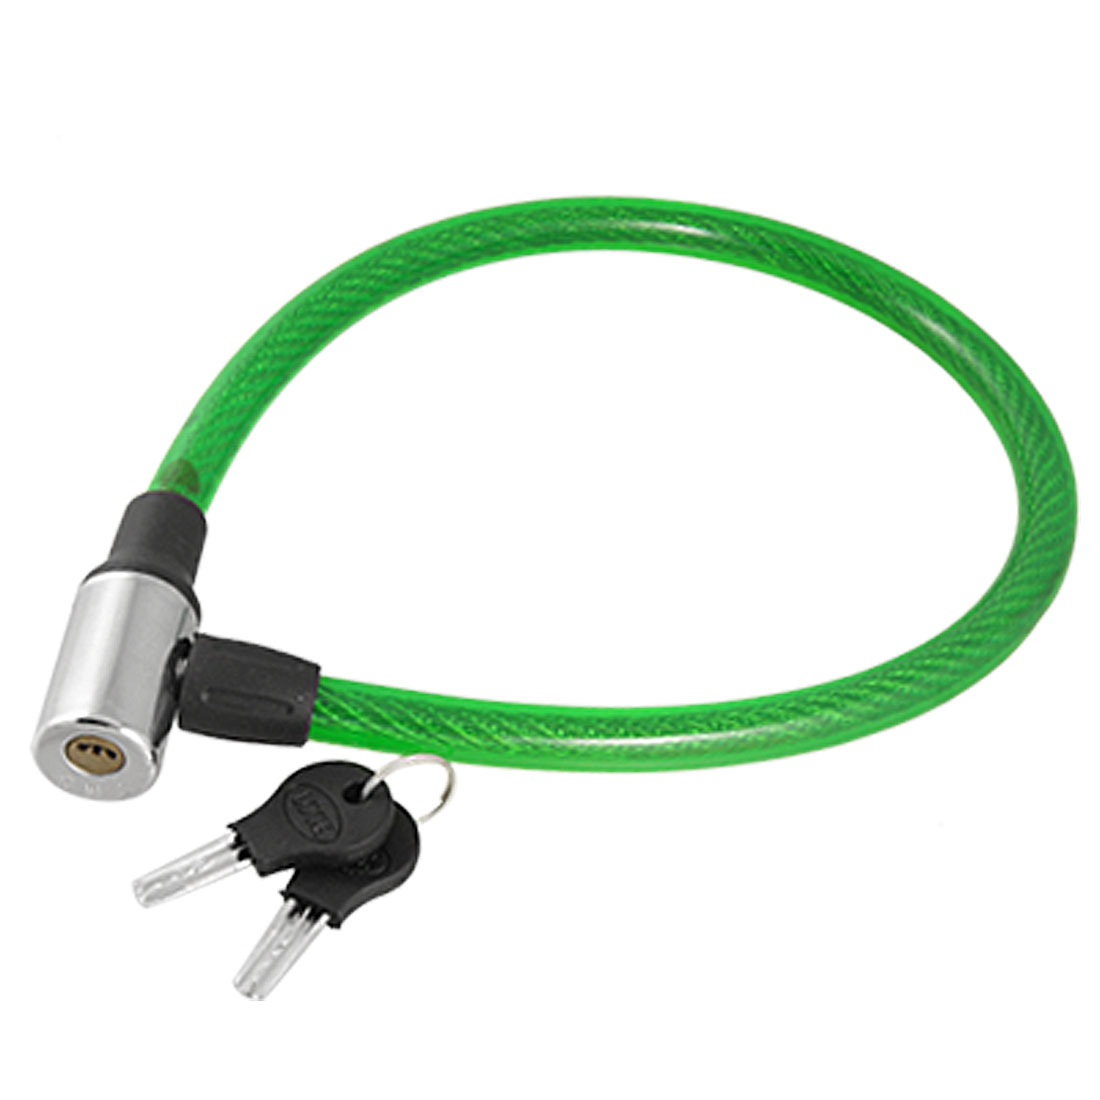 Green Plastic Covered Steel Wire Cable Lock Safeguard for Bike Bicycle